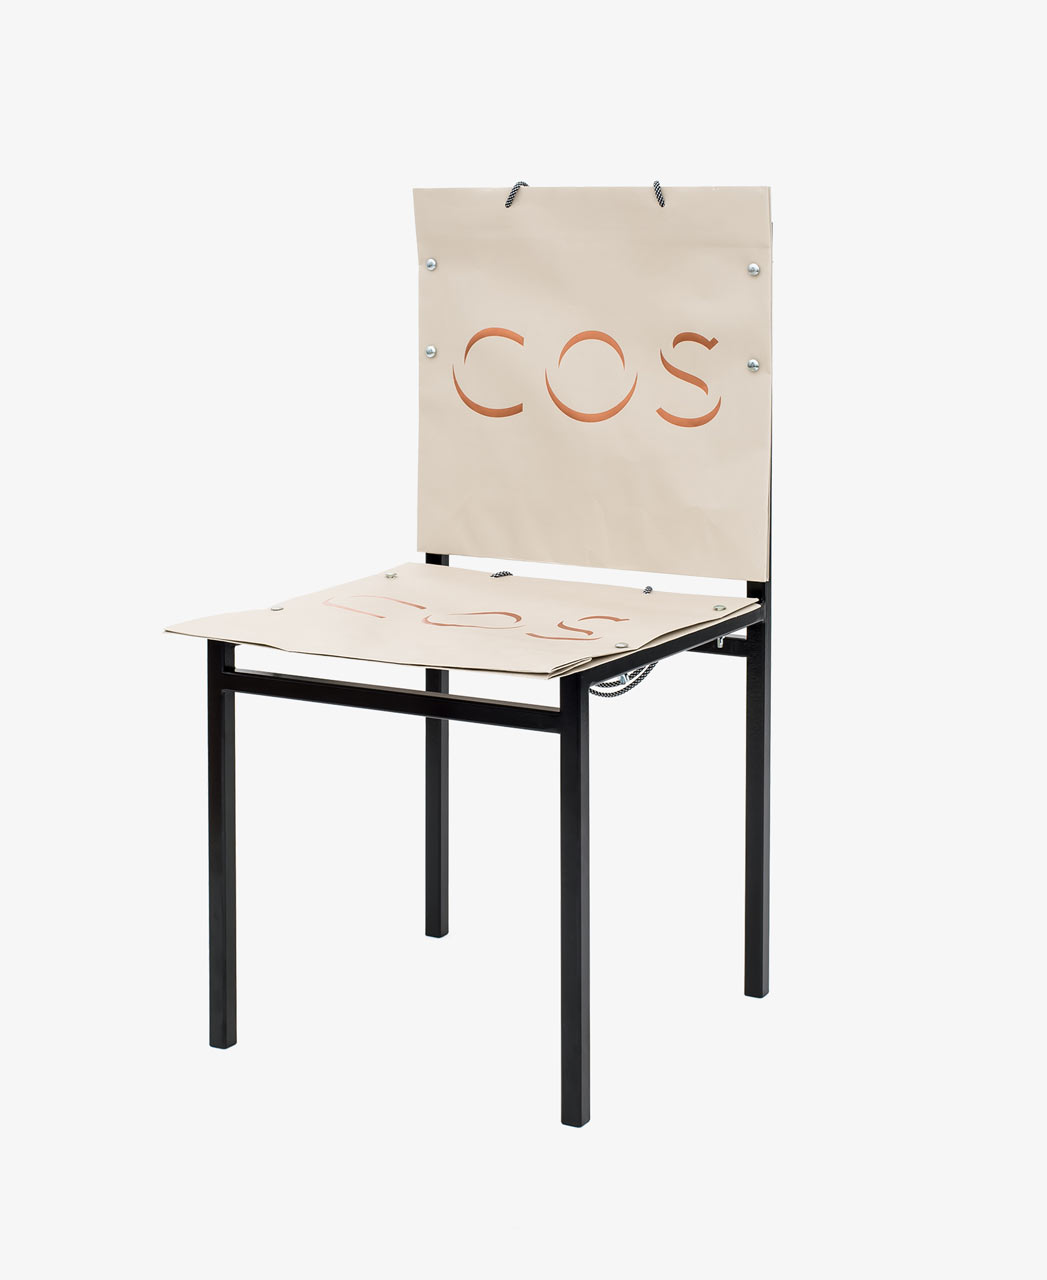 simon_freund-shopping_bag_chairs-hisheji (3)